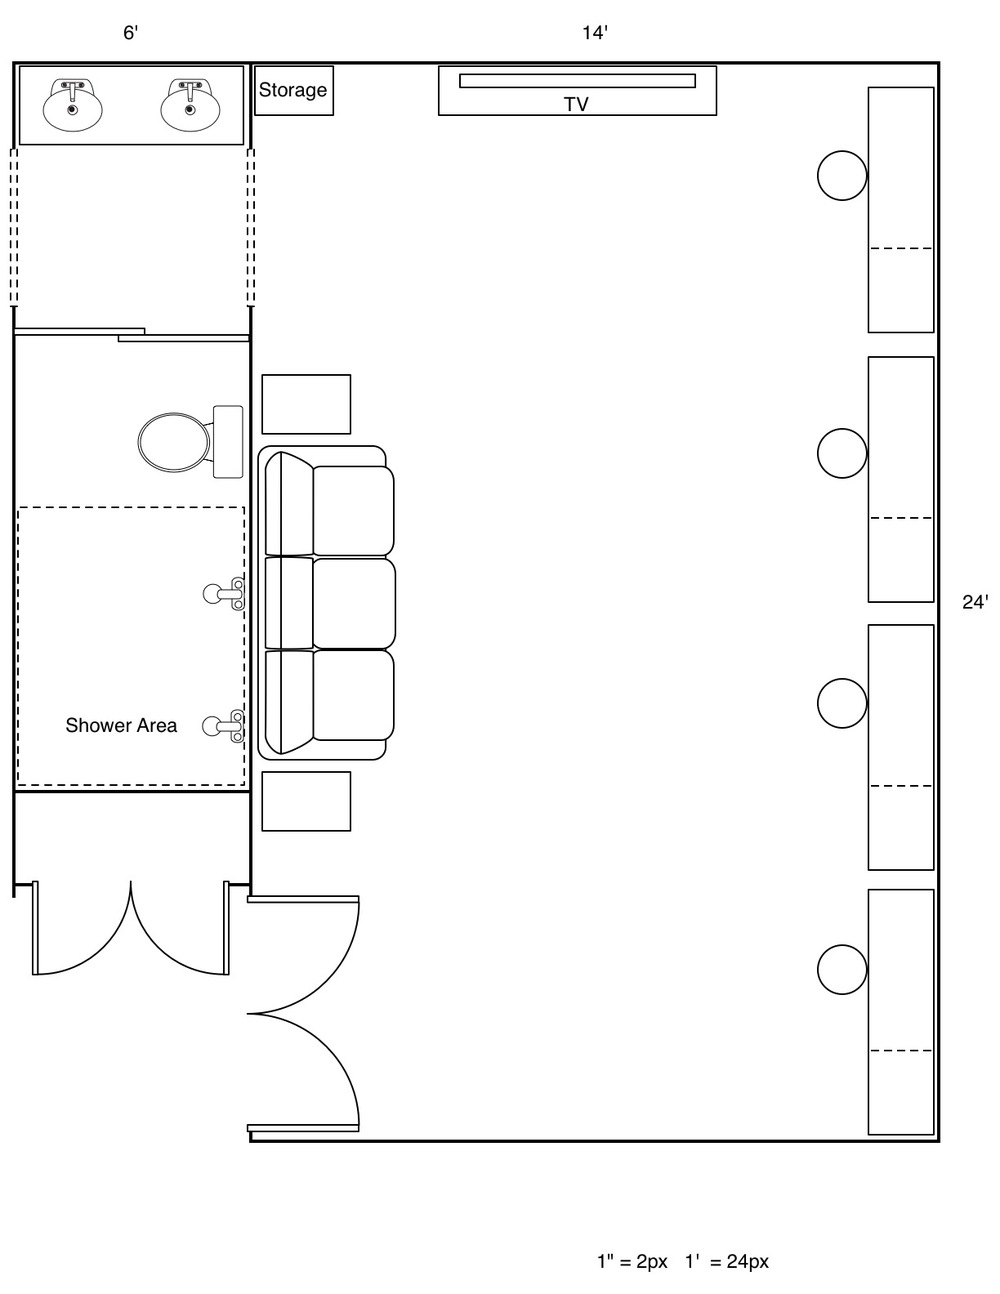 Locker Room Layout.jpg